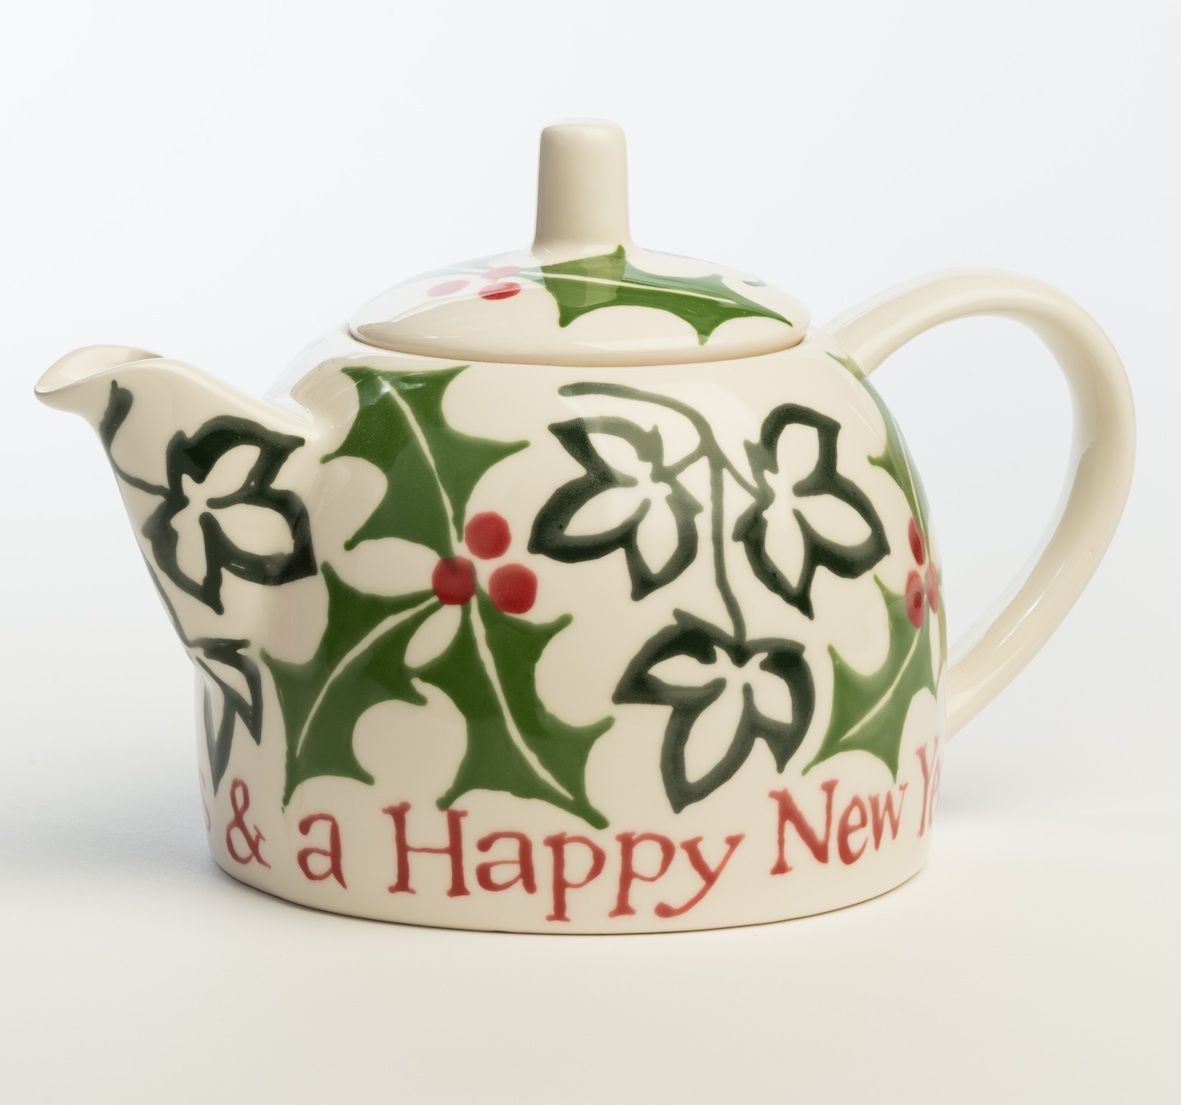 Hannah Berridge Holly and Ivy Christmas Teapot .... dome shape teapot handpainted with ivy and holly leaves and berries, inscribed 'Merry Christmas & a Happy New Year', ceramic, UK